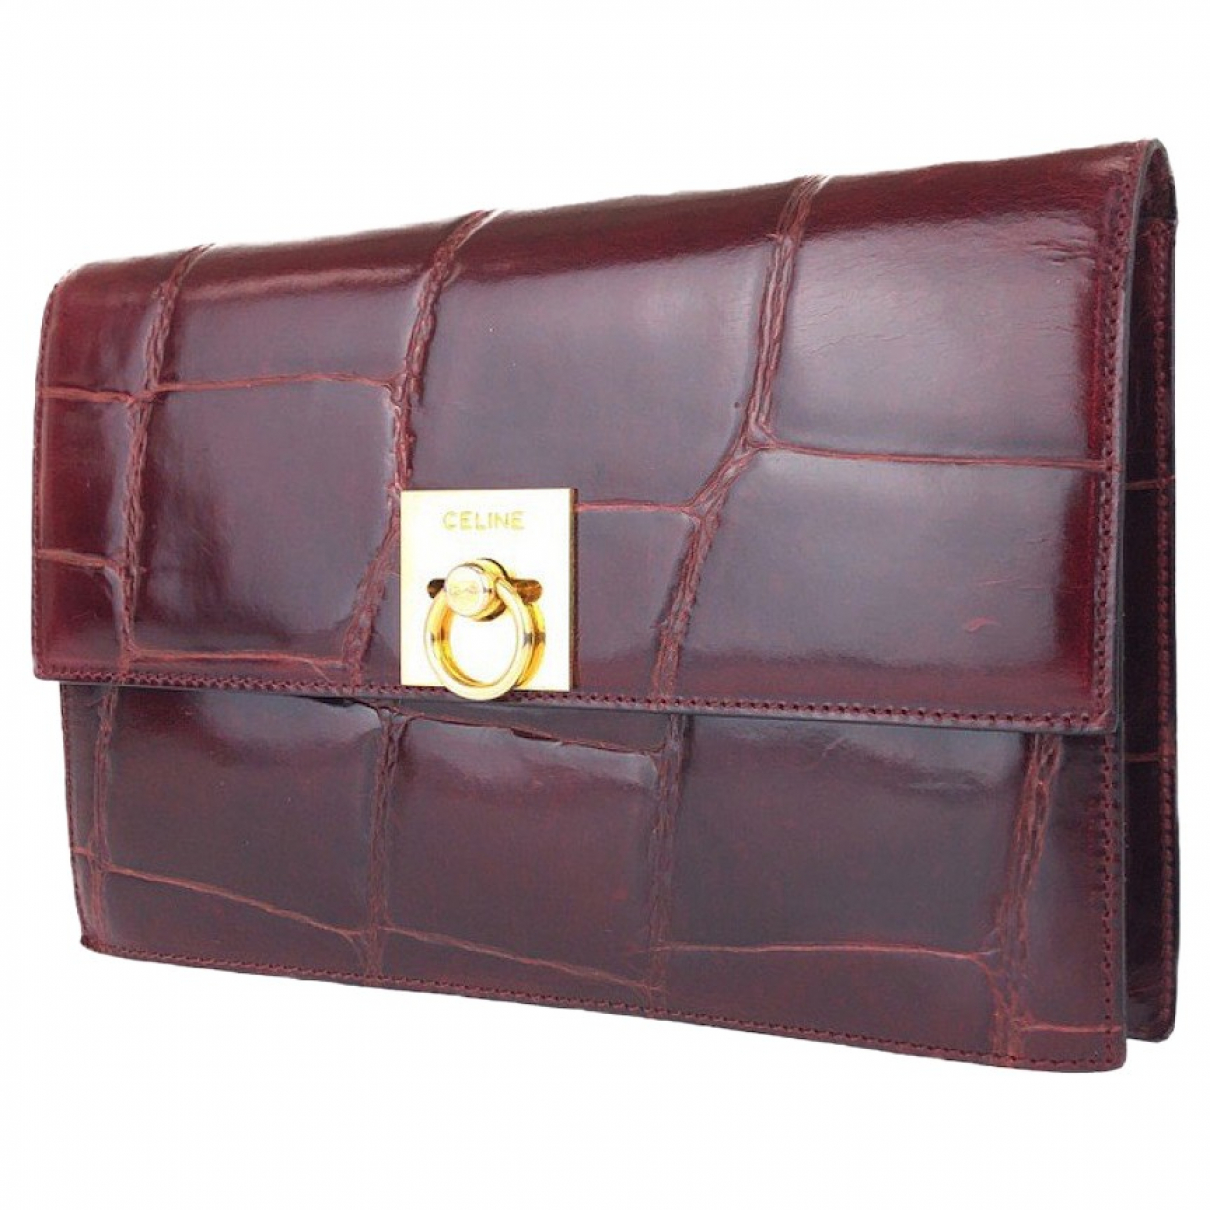 Celine \N Multicolour Leather Clutch bag for Women \N